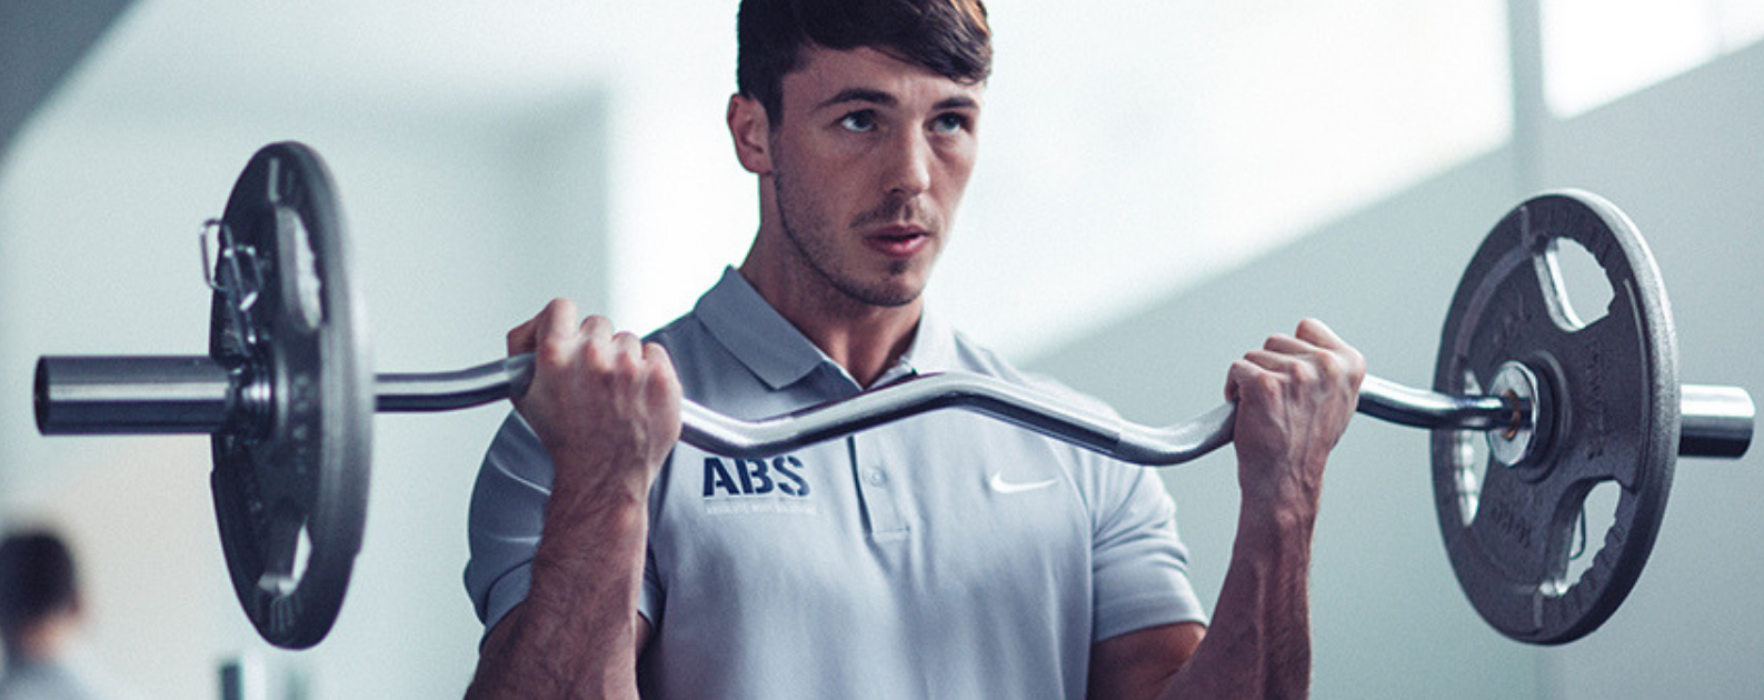 Absolute Body Solutions to open new premium personal training gym in Manchester